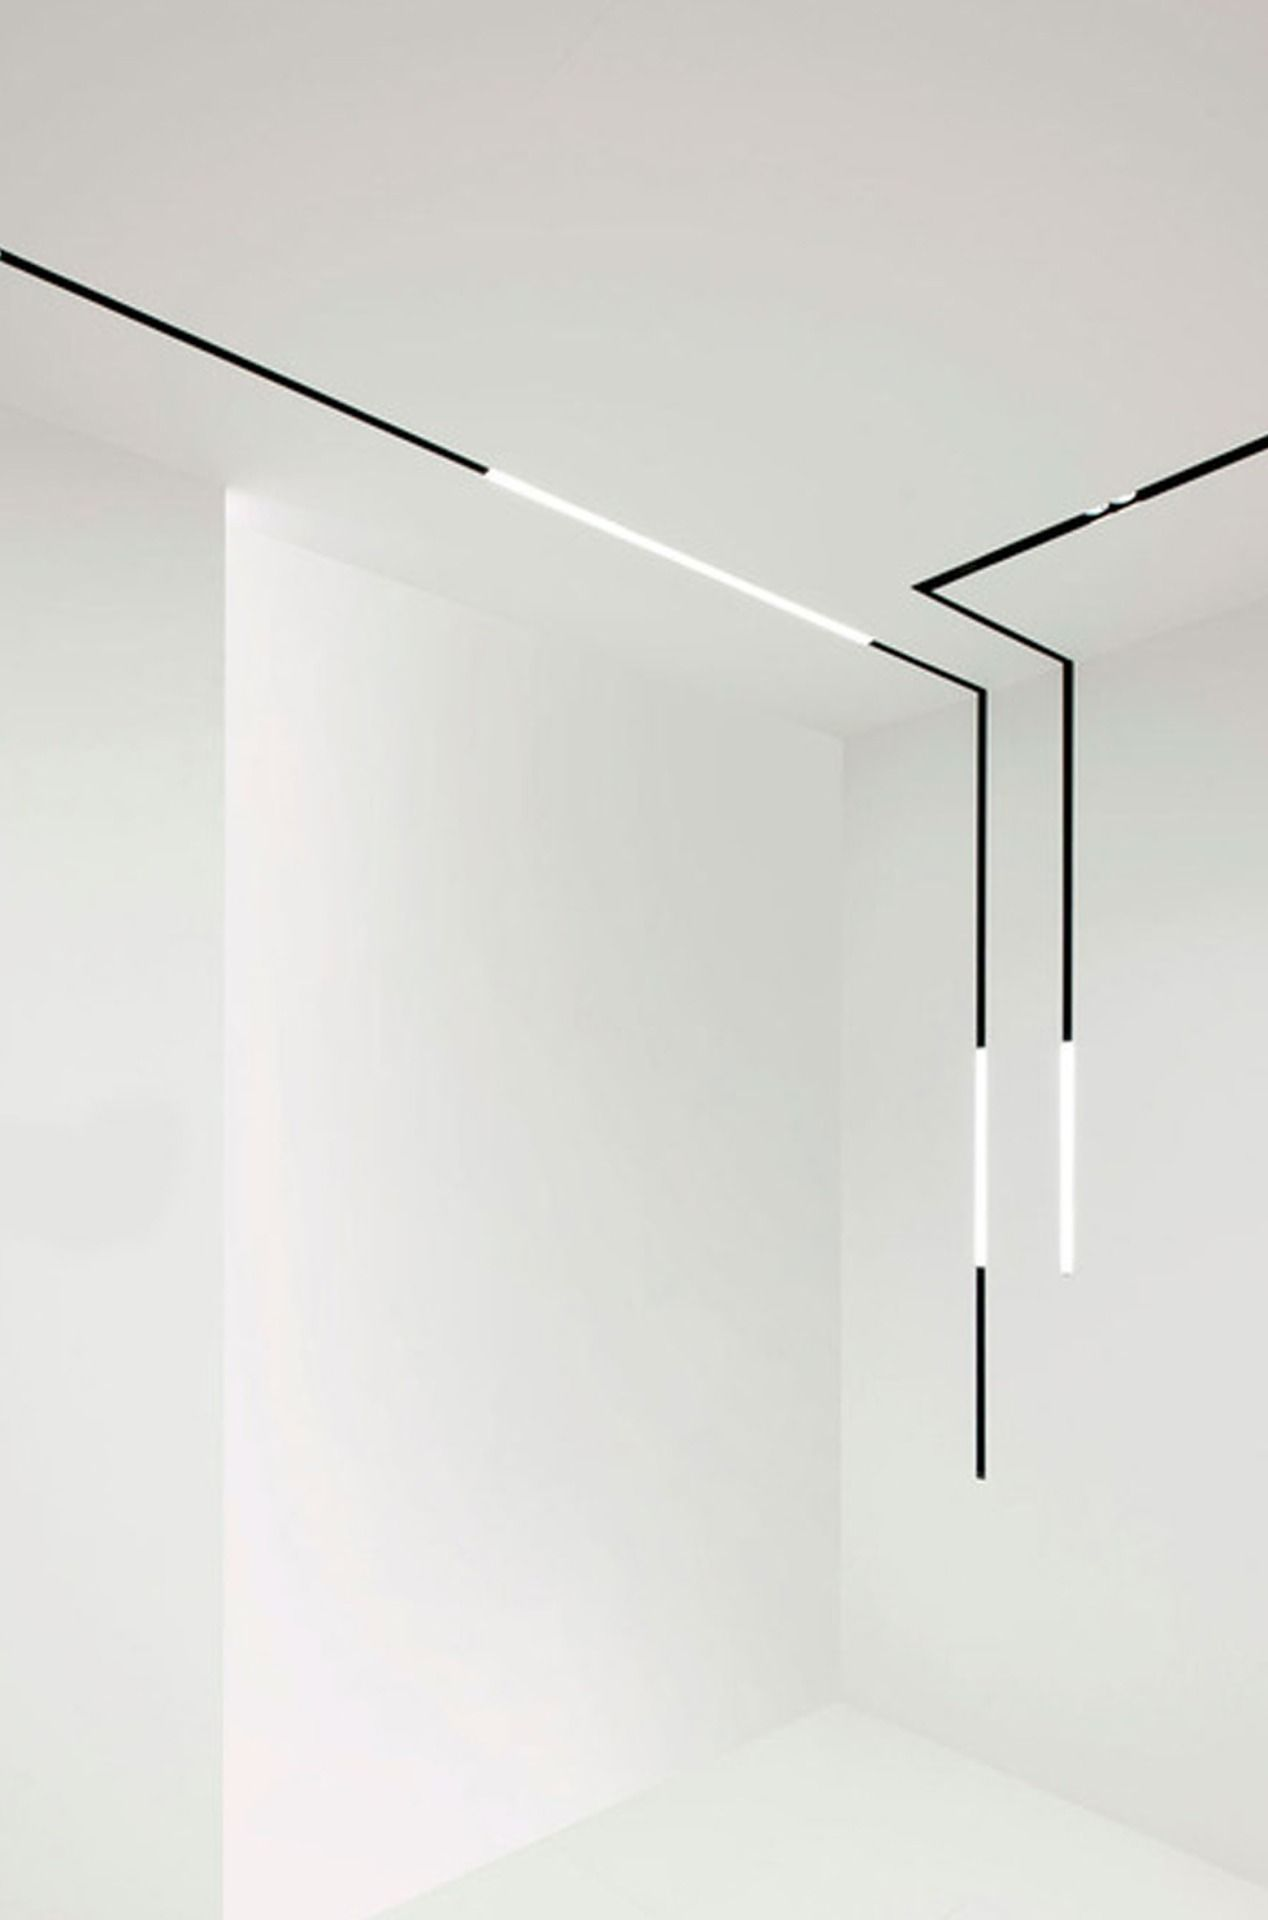 splitline  architectural tracklight system by delta light  - splitline  architectural tracklight system by delta light